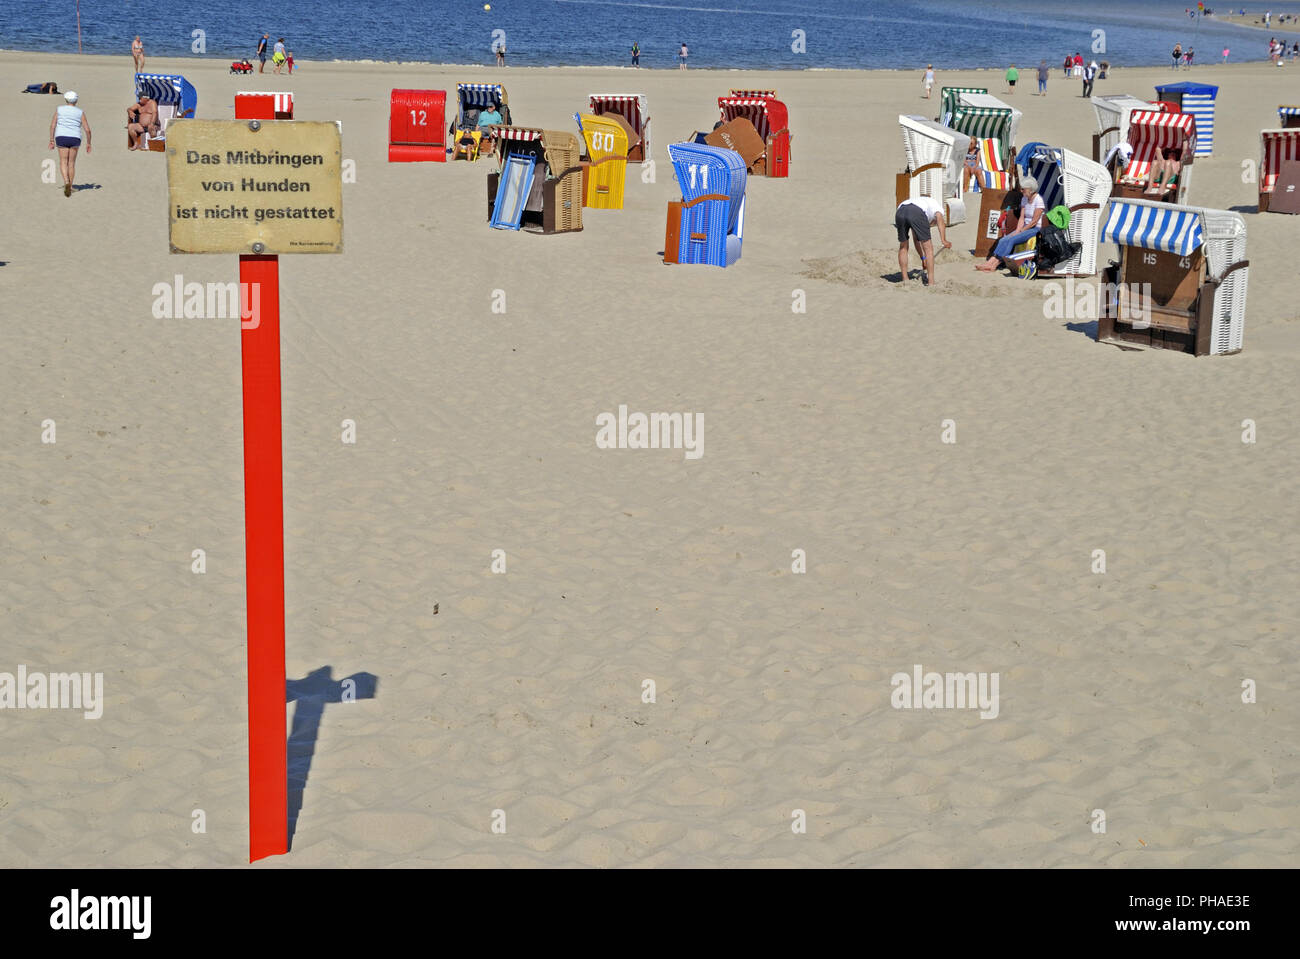 beach, indication - Stock Image